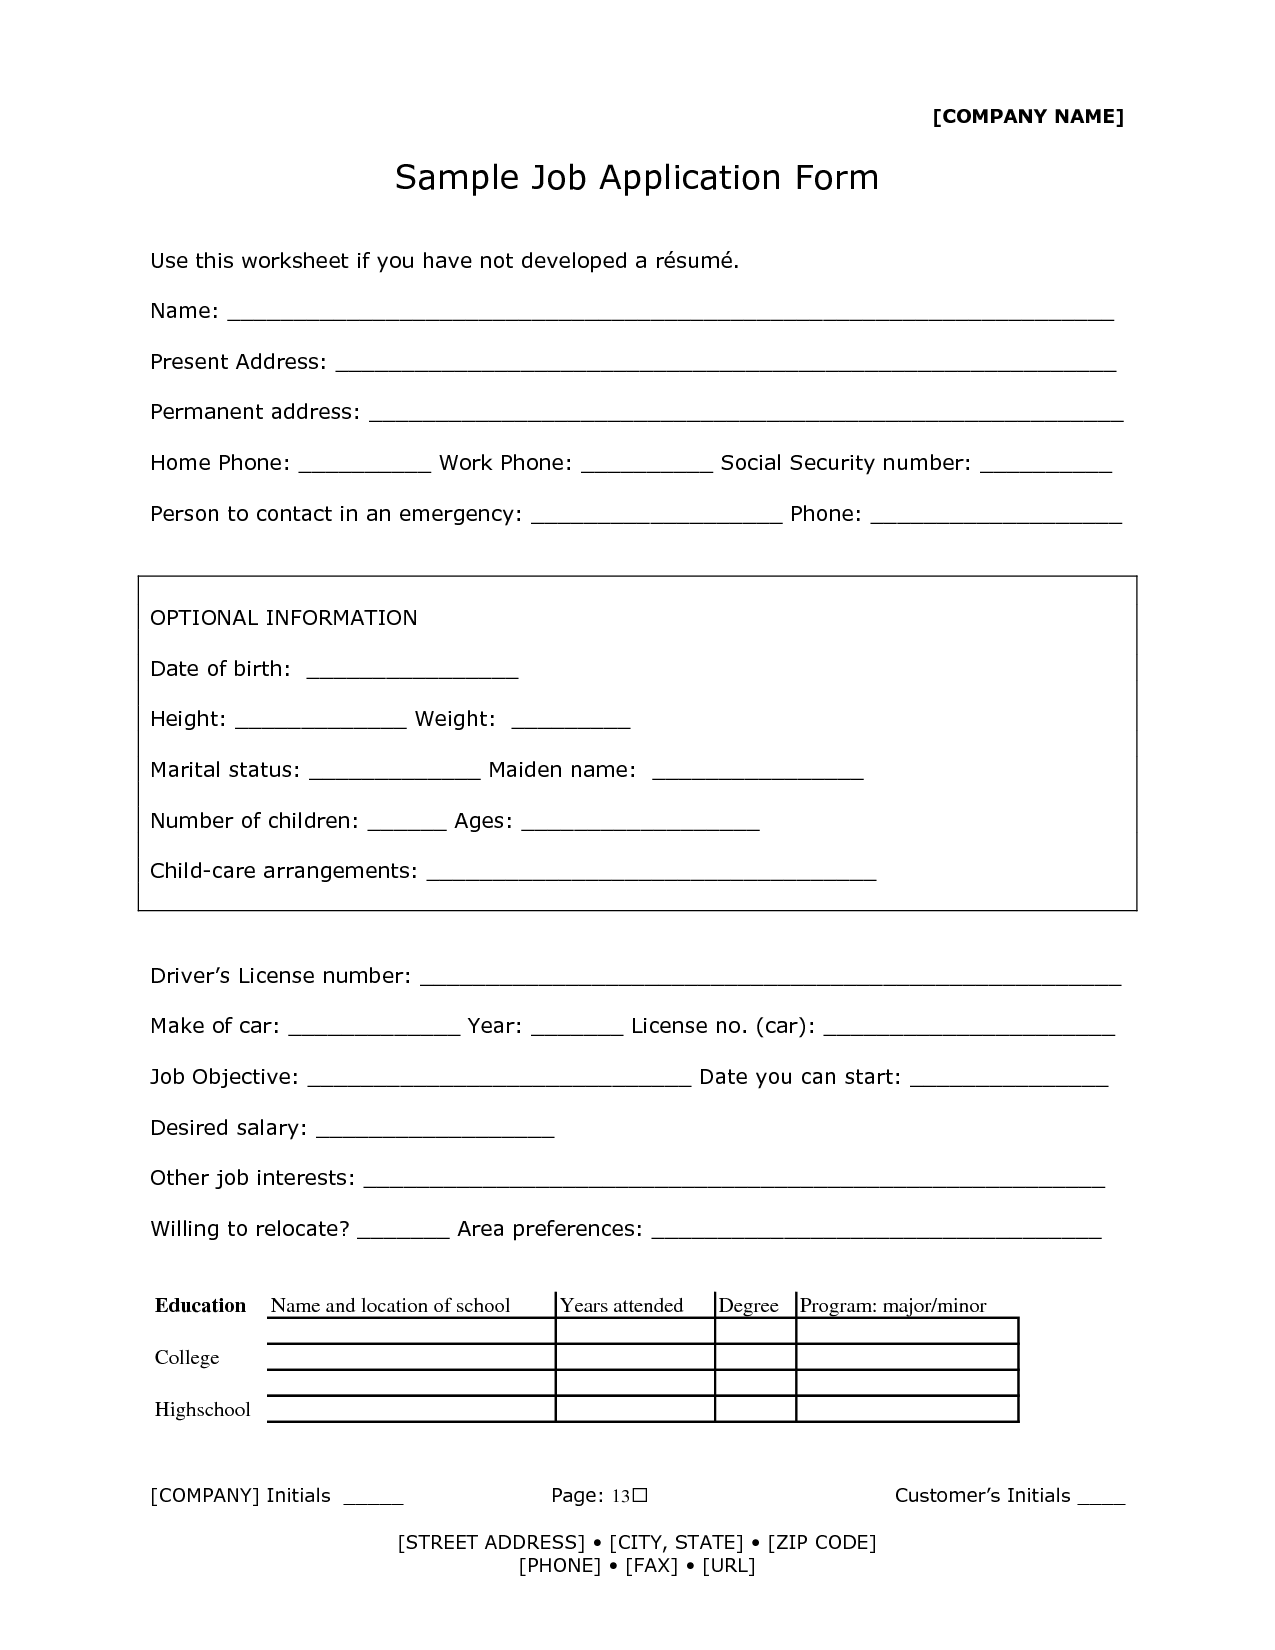 Sample Of Job Application Form Fa09ivho 13 Sample Of Job Application Form And Tips To Complete